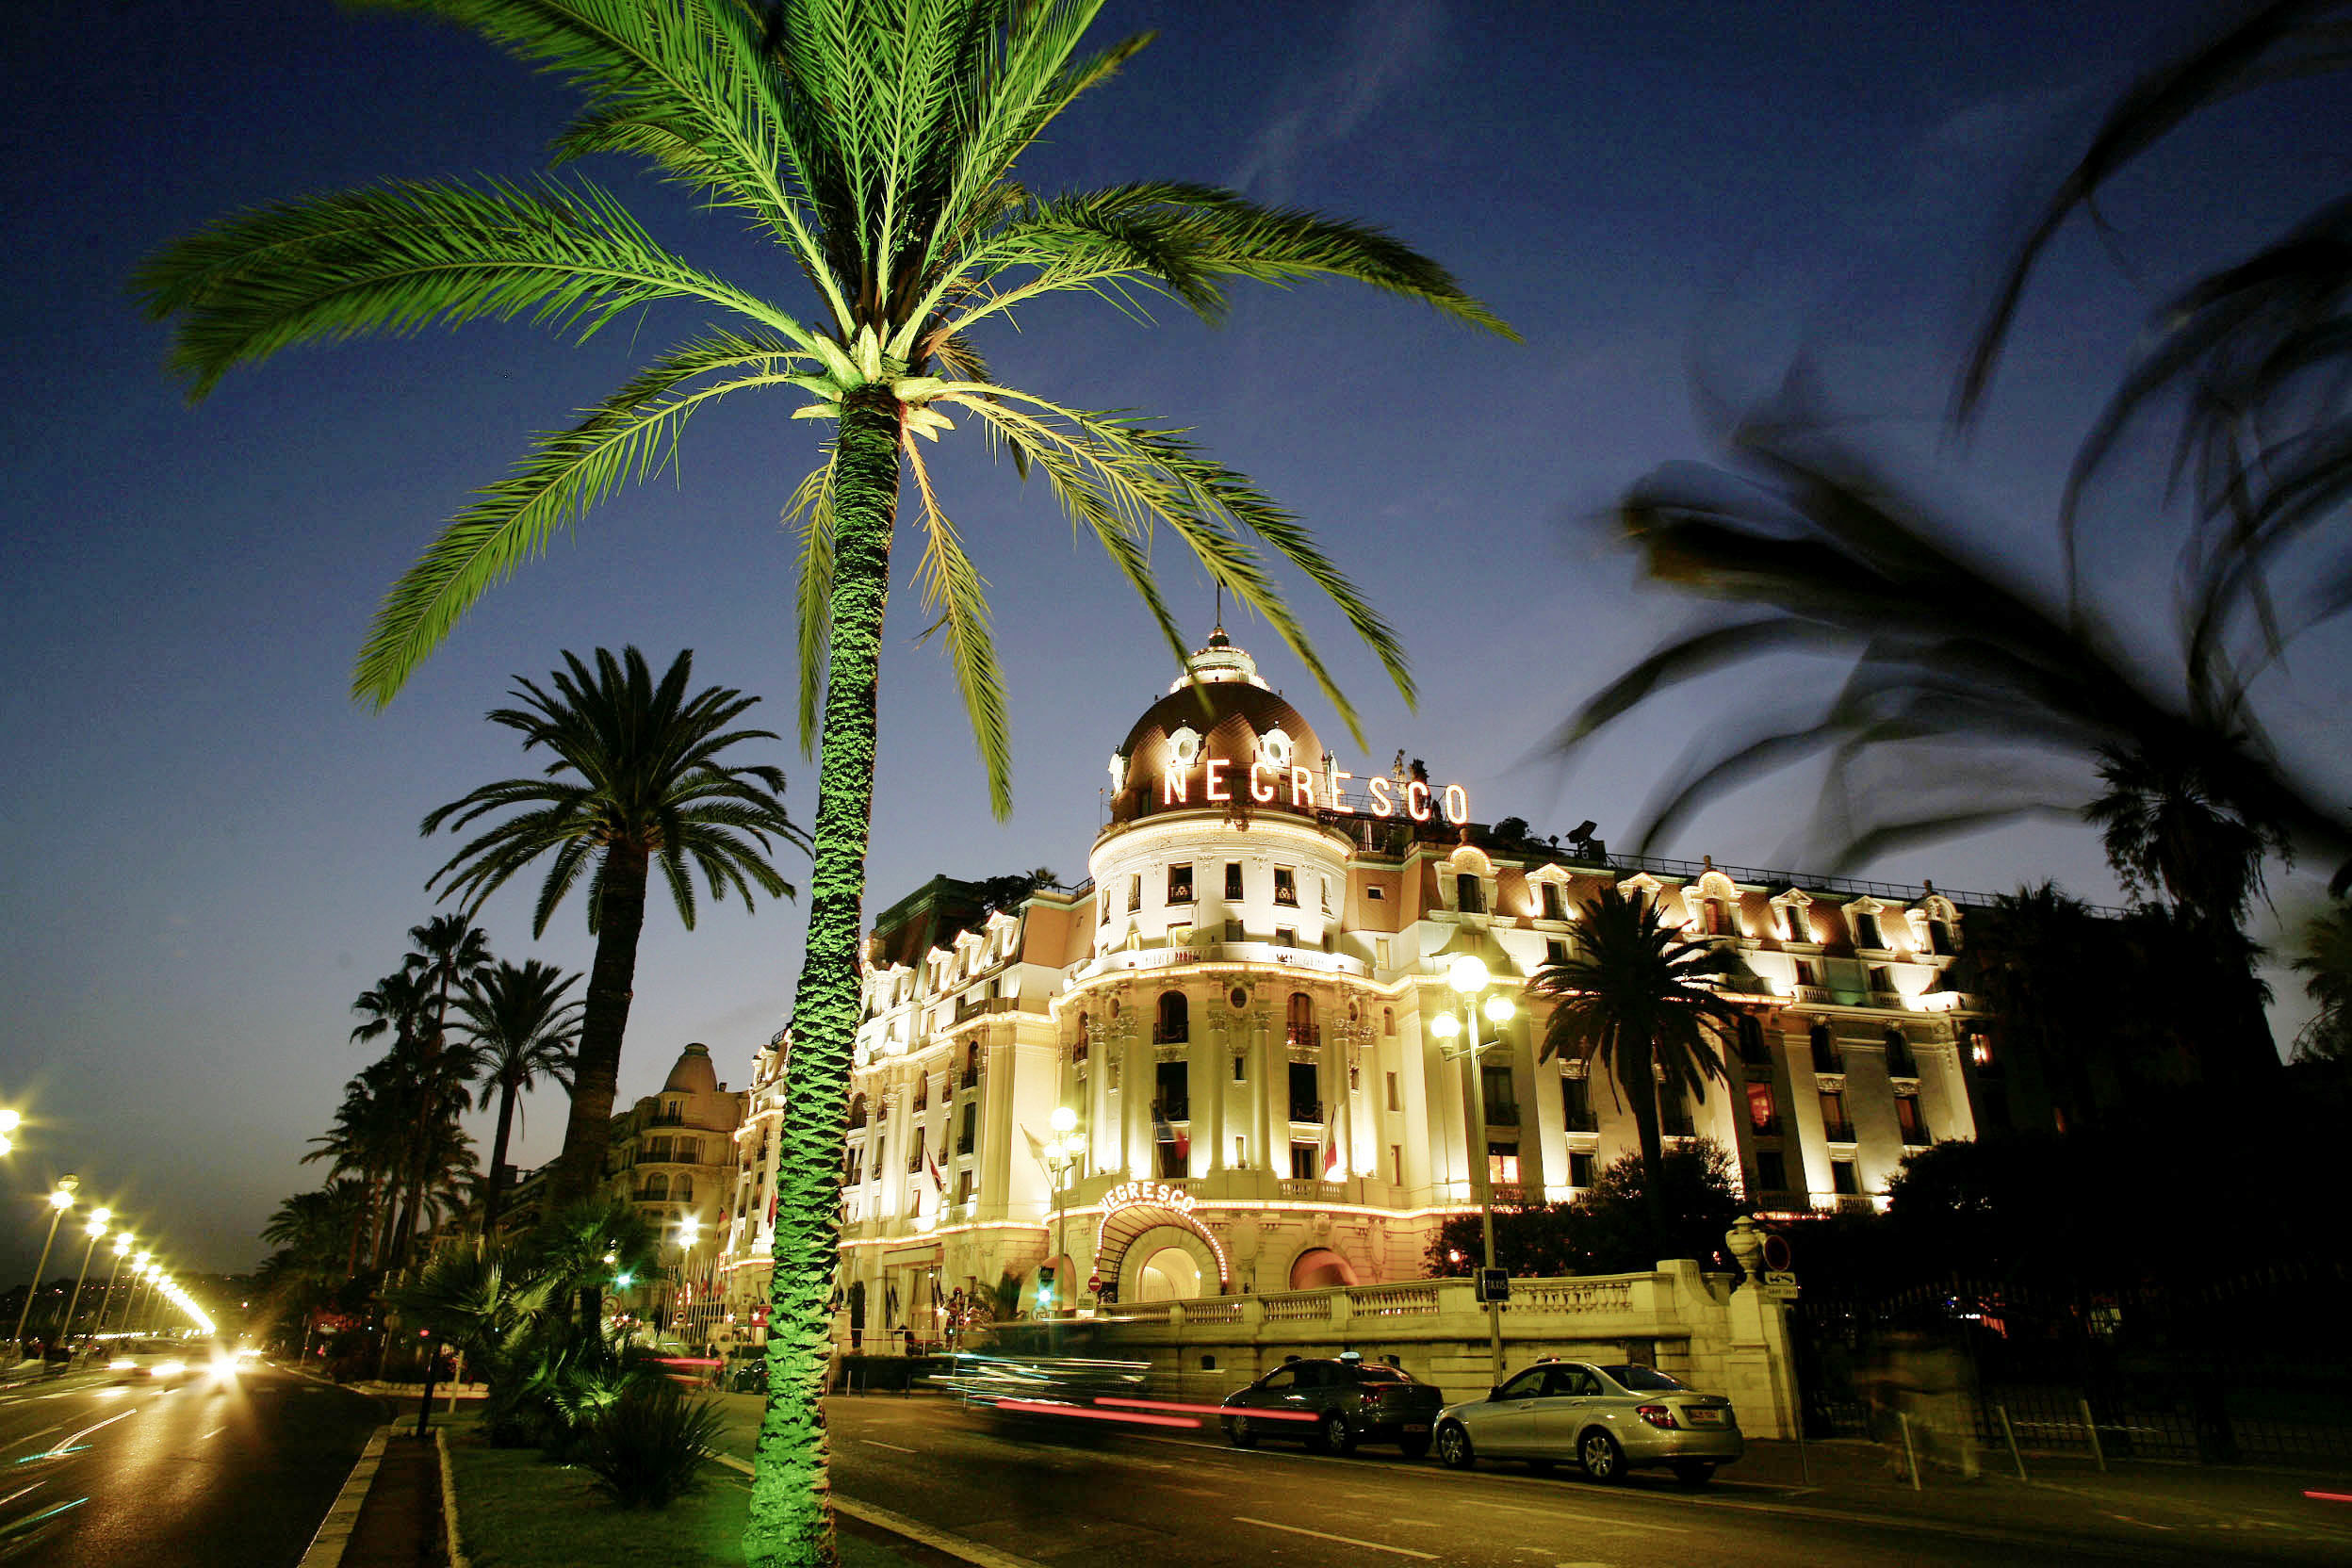 France, Cote d´Azur, Nice, Hotel Negresco at the Promenade des Anglais  ©  Reiner Riedler / Anzenberger